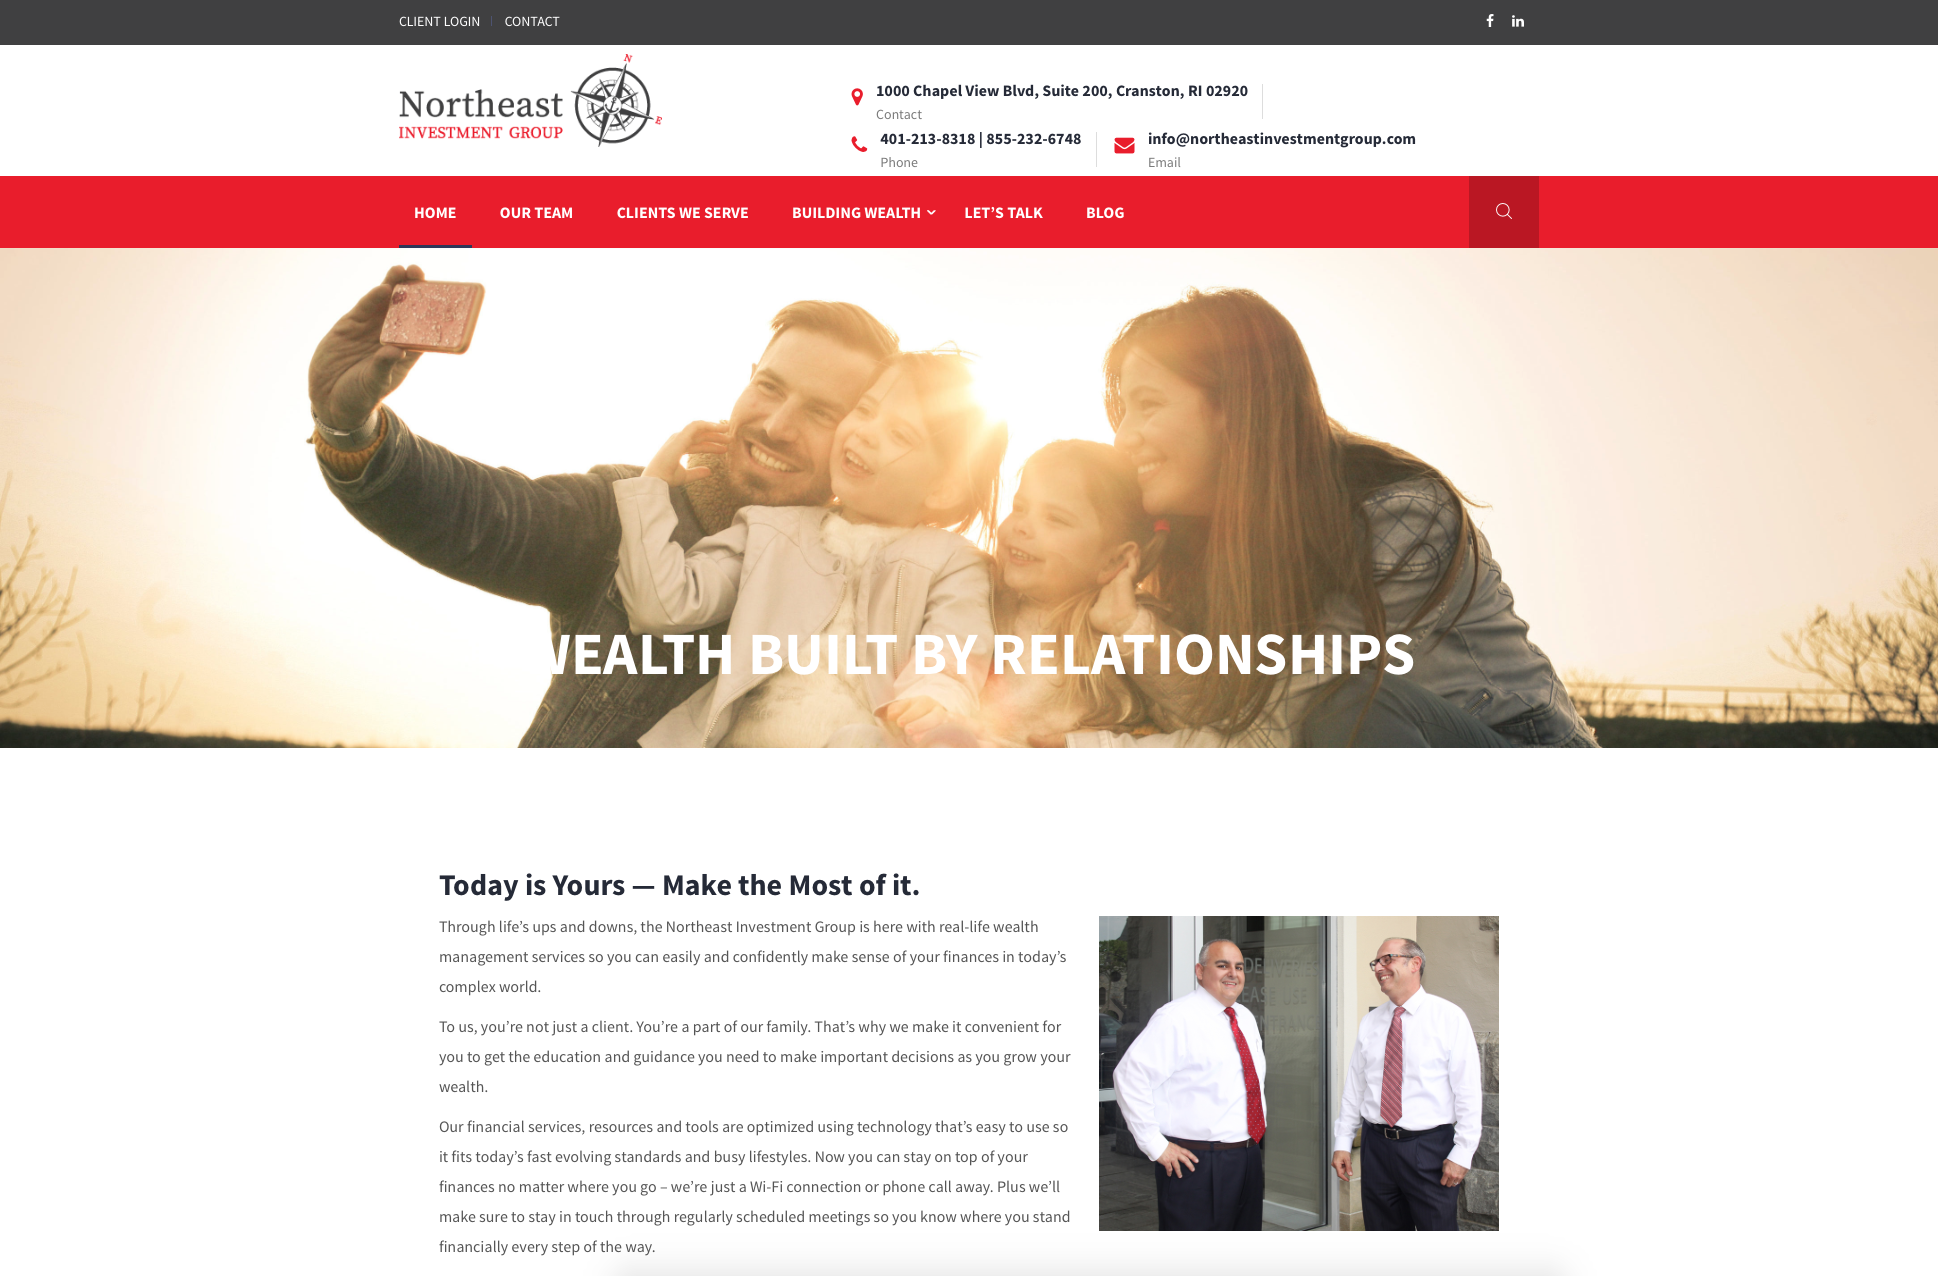 Northeast Investment Group